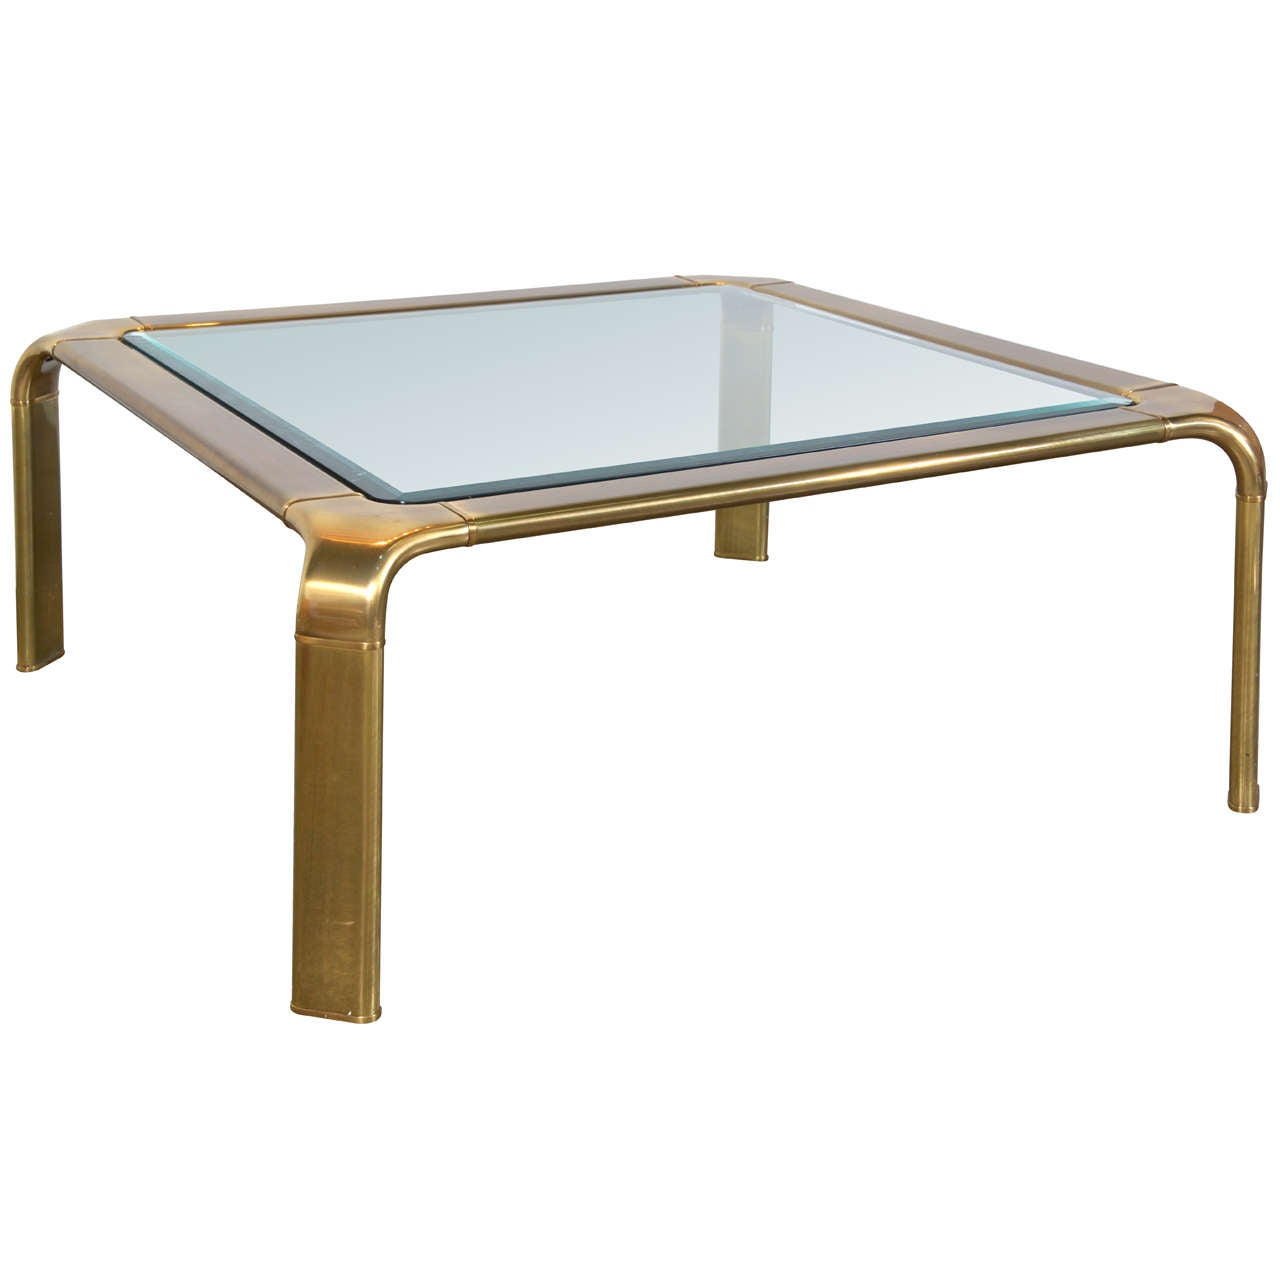 Messing Couchtisch Mit Glasplatte John Widdicomb Square Brass Coffee Table With Glass Top At